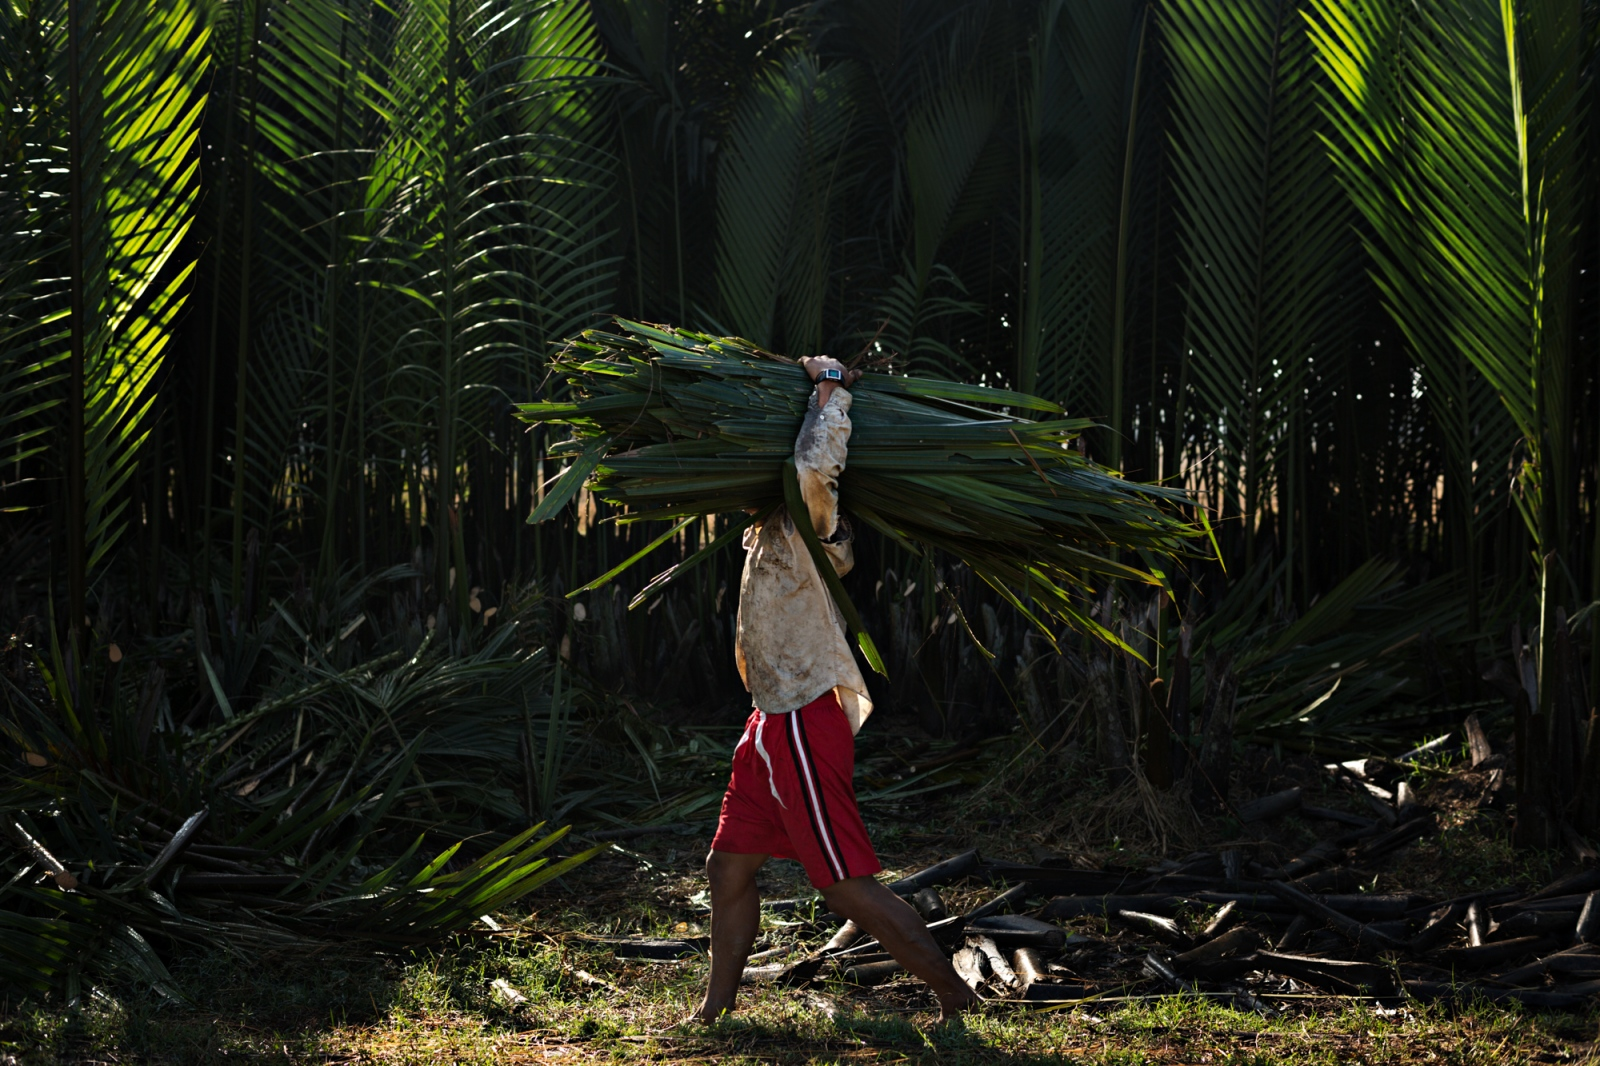 A farmer carries a bundle of palm fronds, which are used for roofing, back to his home in Pathain.